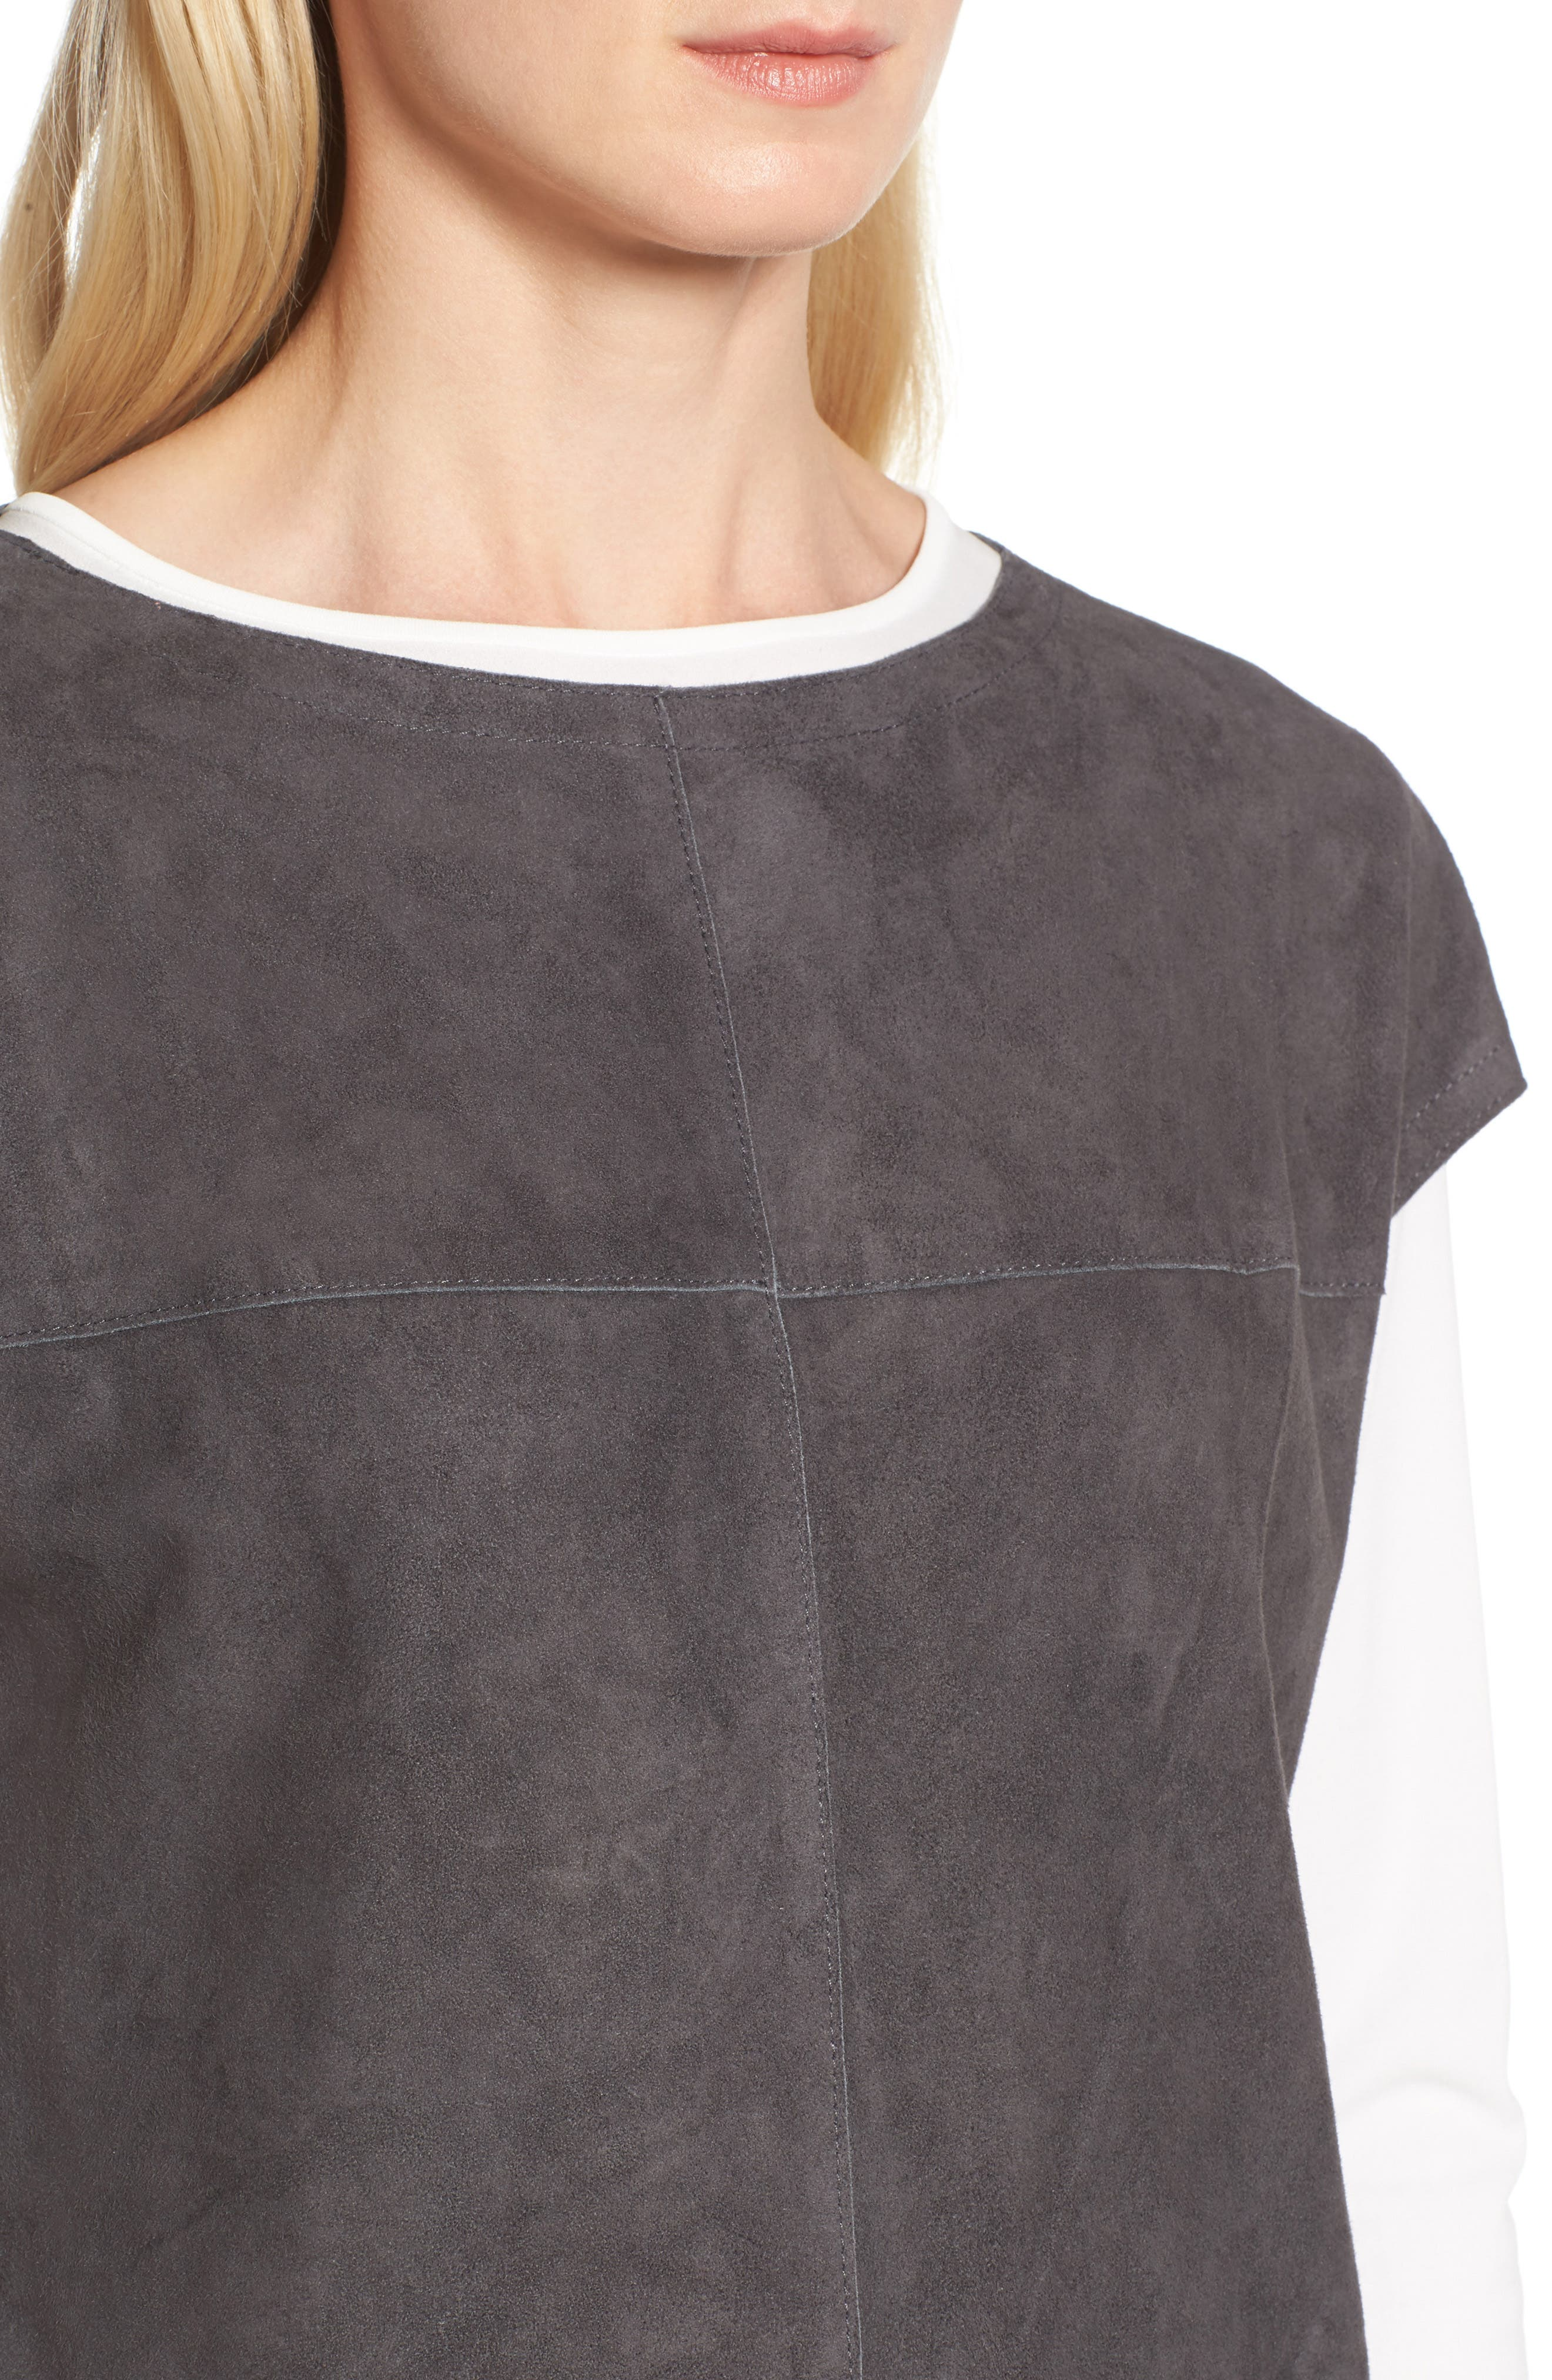 Suede Tunic,                             Alternate thumbnail 4, color,                             210